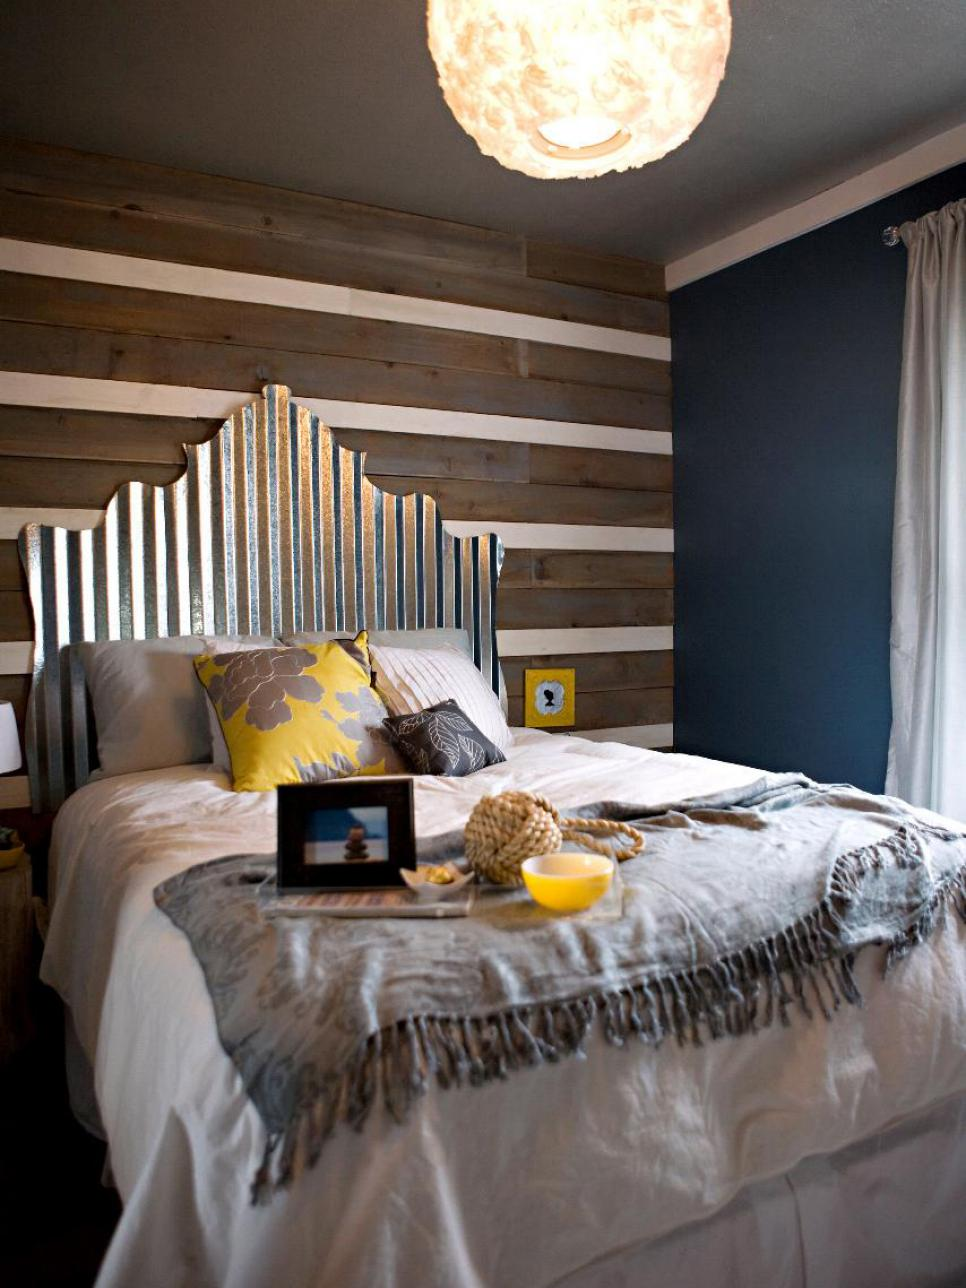 creative, upcycled headboard ideas | hgtv